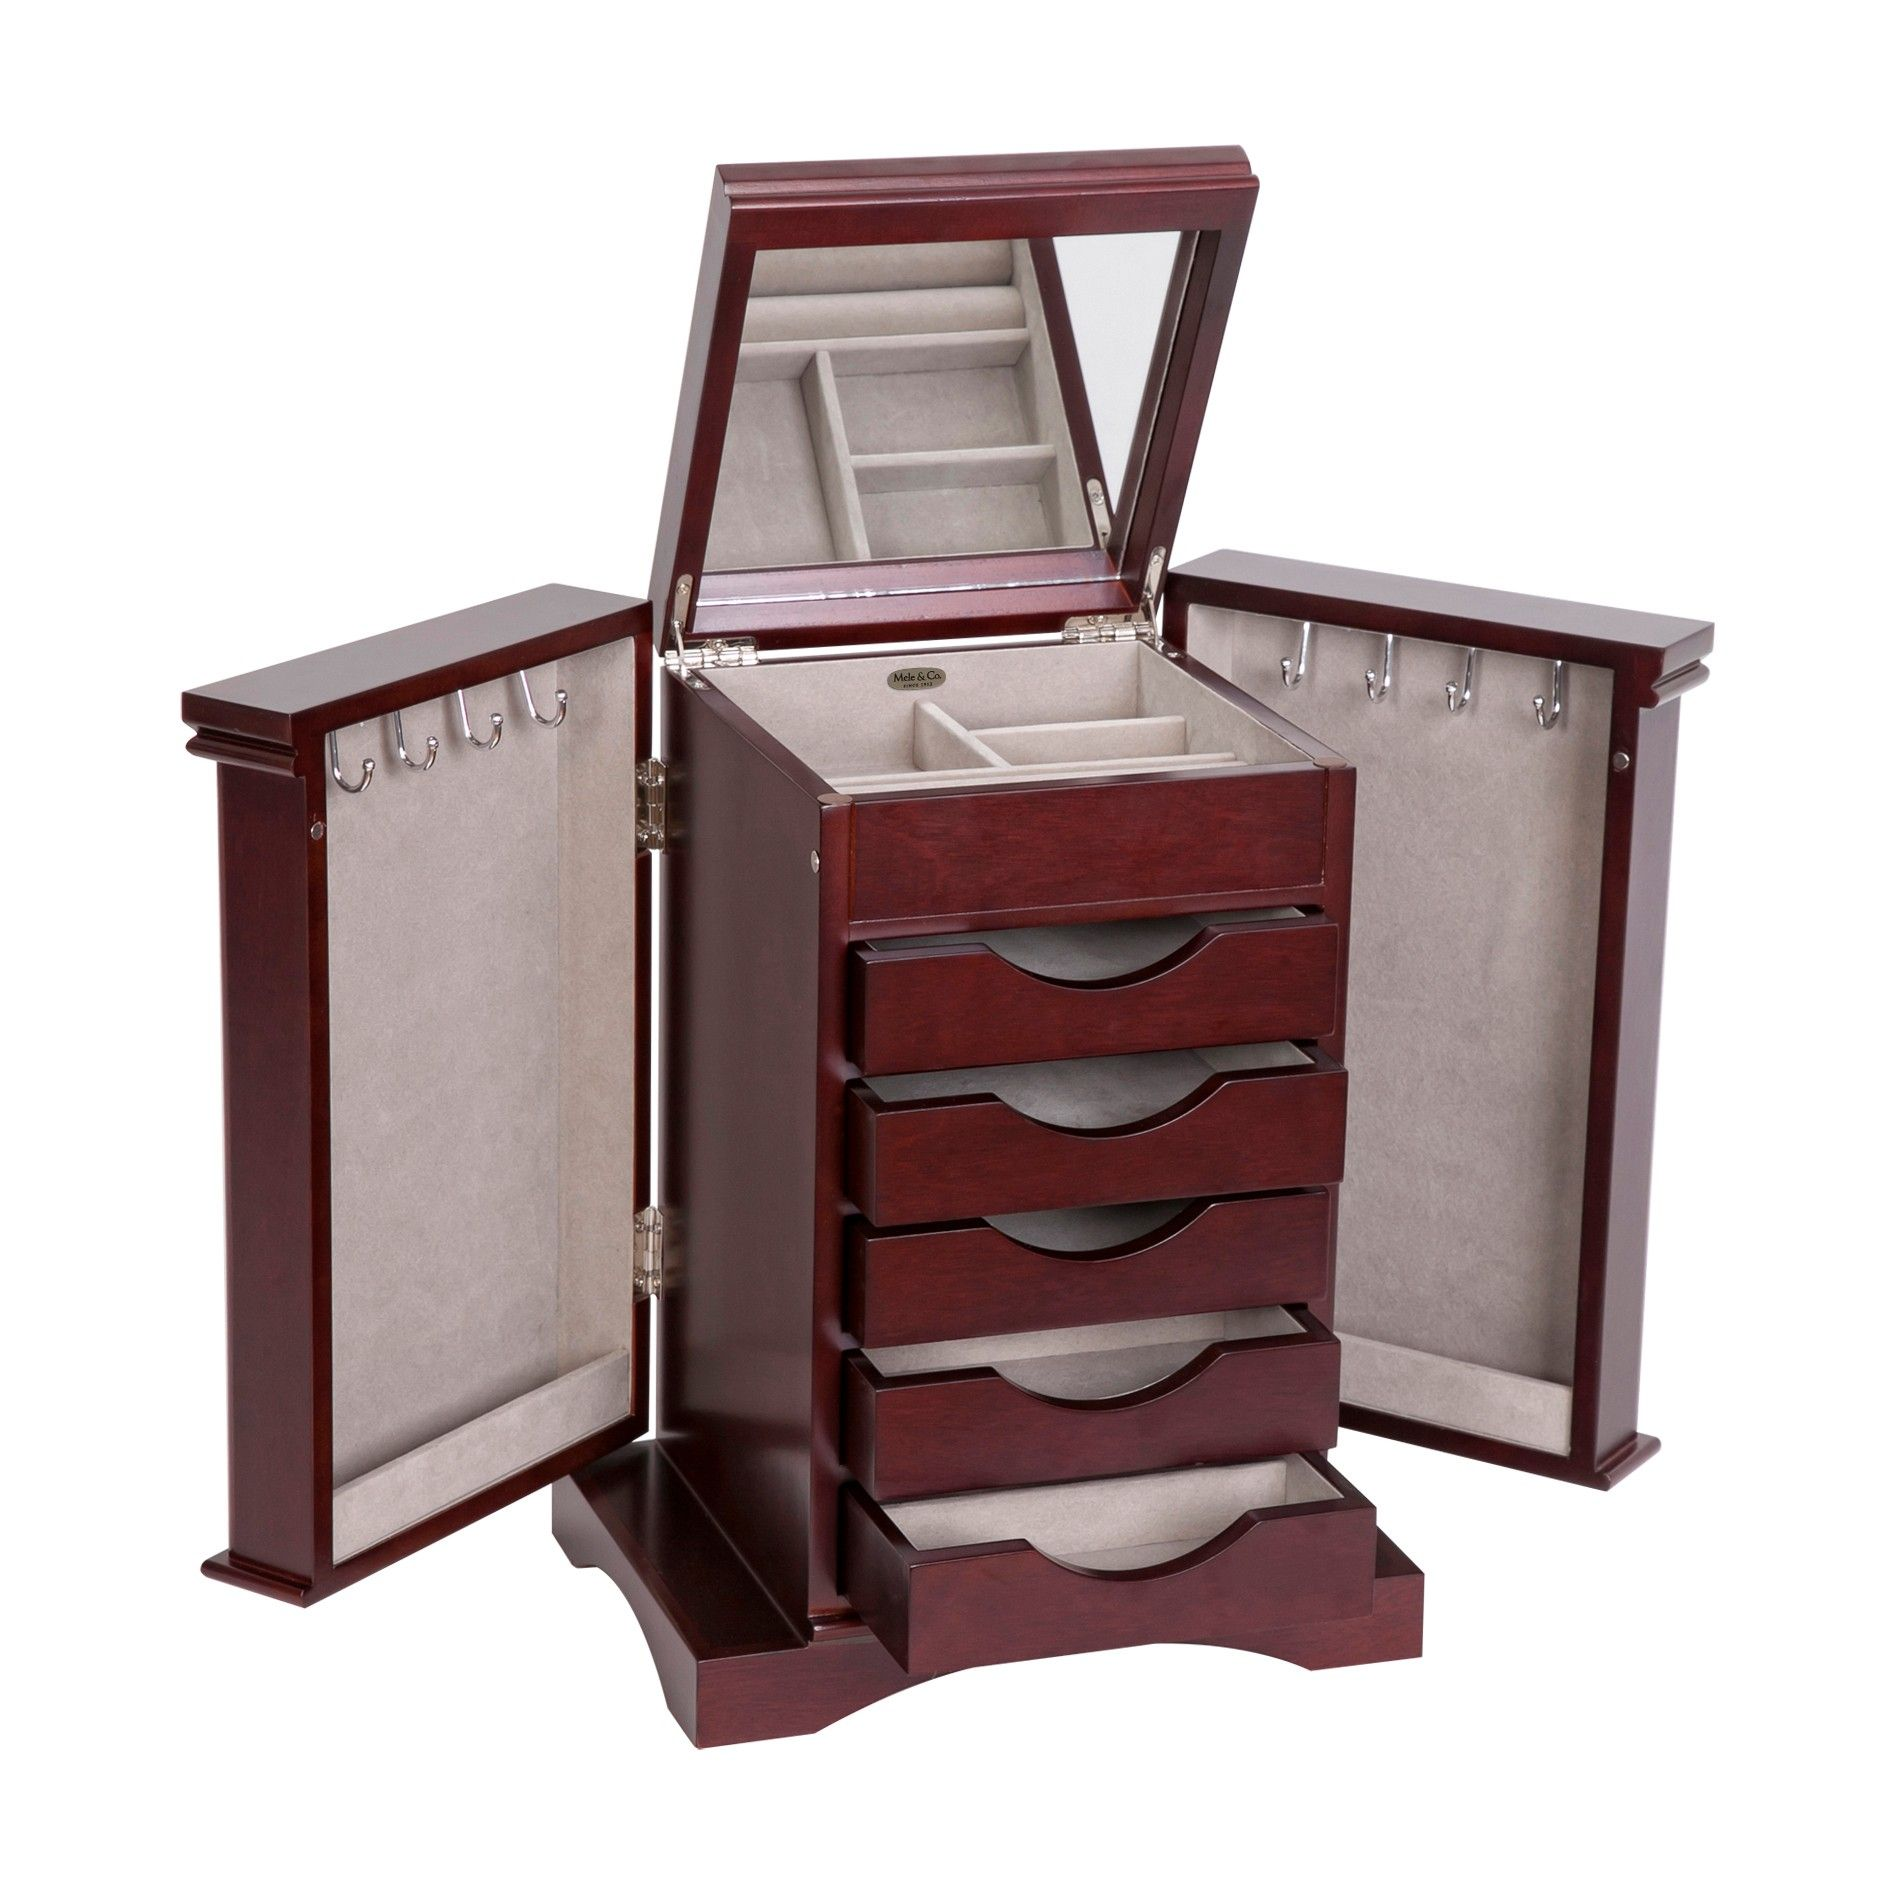 bathroom cabinet with drawers arden wooden jewelry box in mahogany finish mele amp co 15598